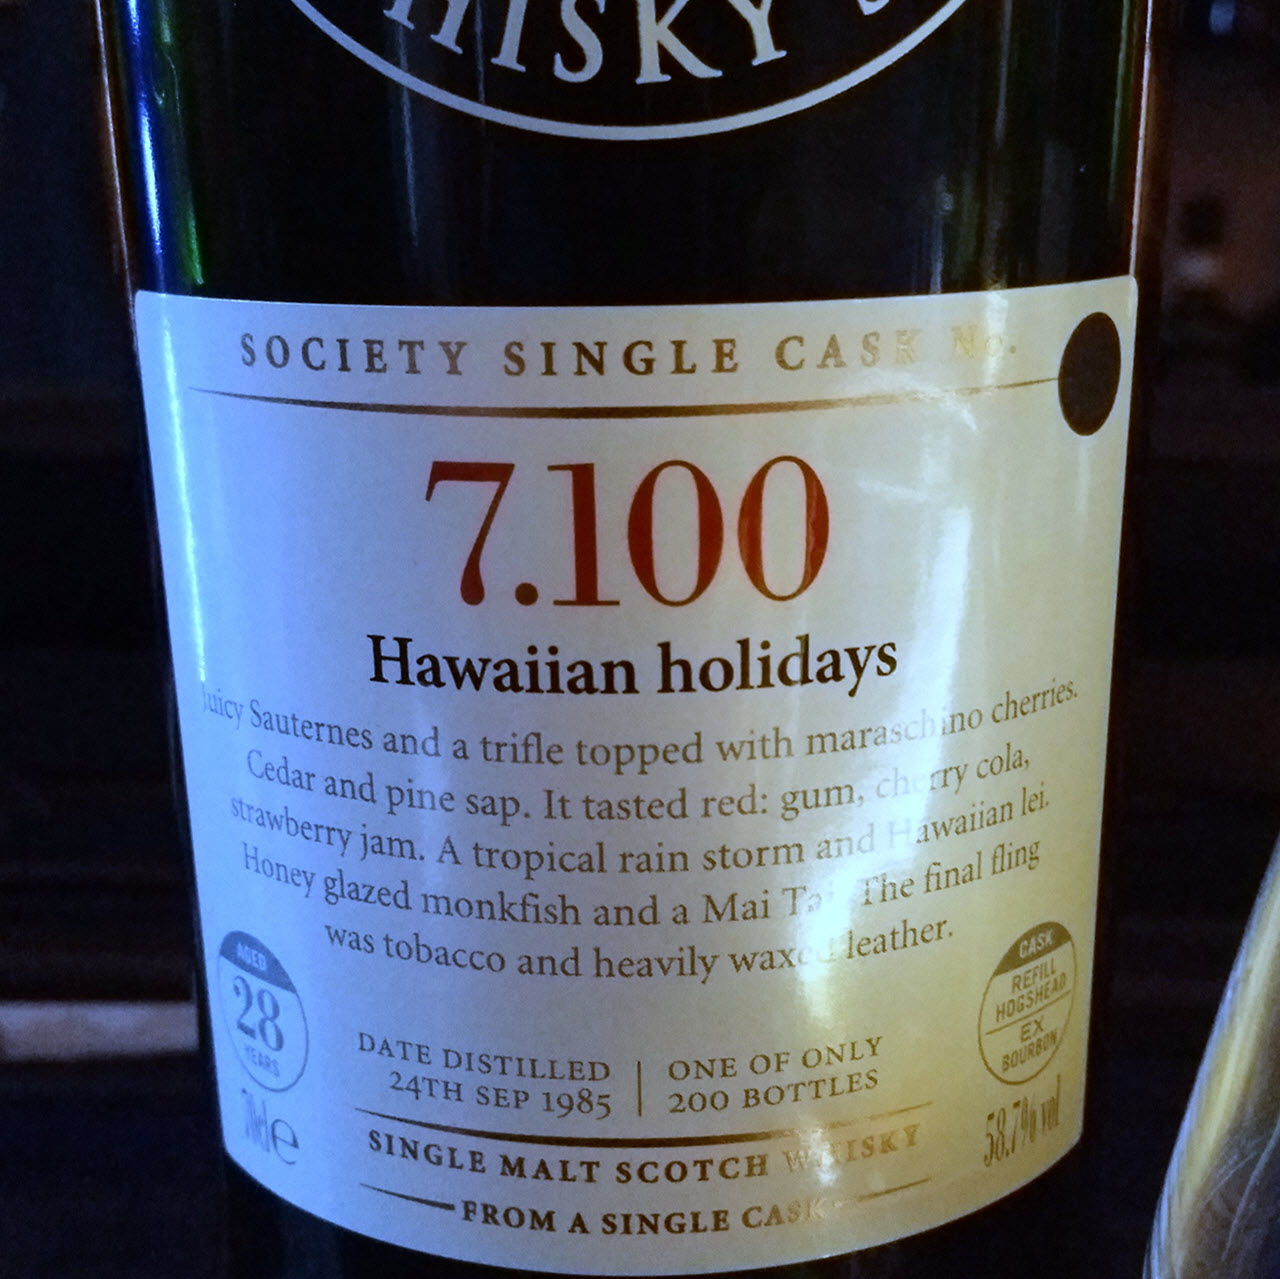 SMWS 7.100 Hawaiian holidays